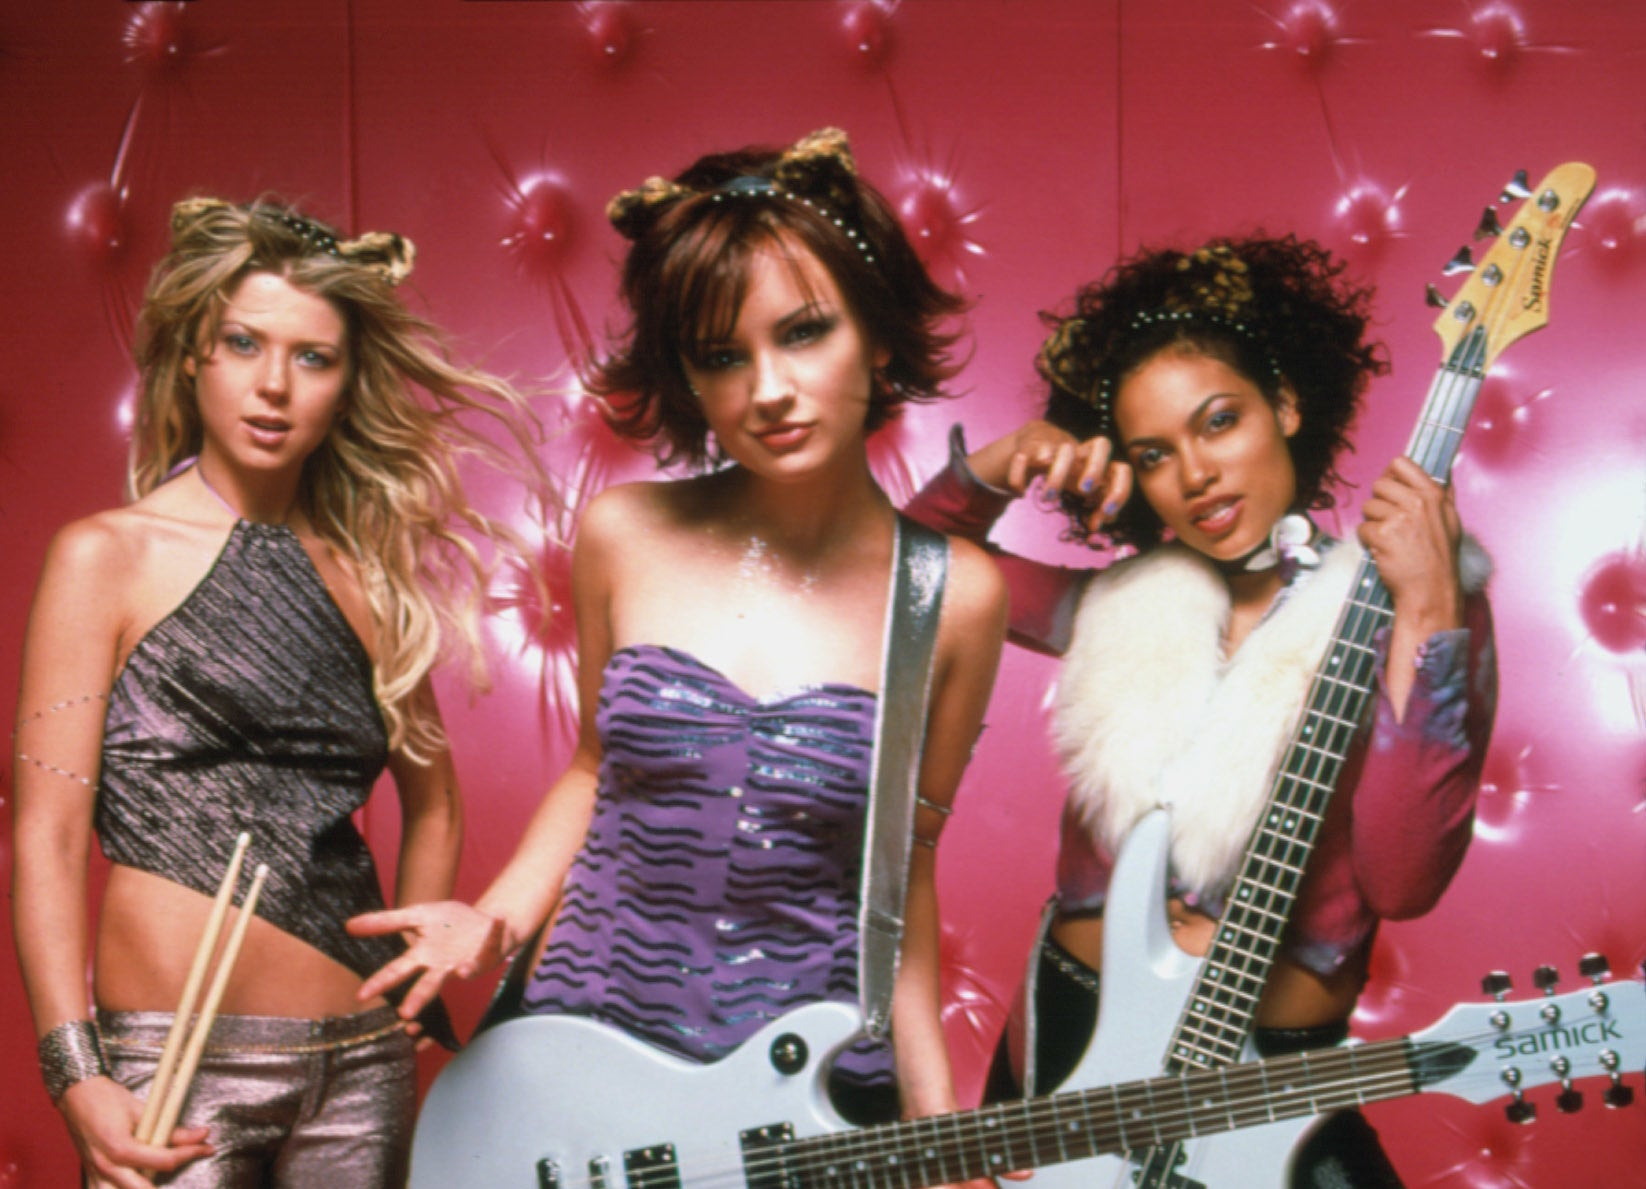 A publicity photo of Tara Reid, Rachael Leigh Cook, and Rosario Dawson with kitty ears taken for the movie